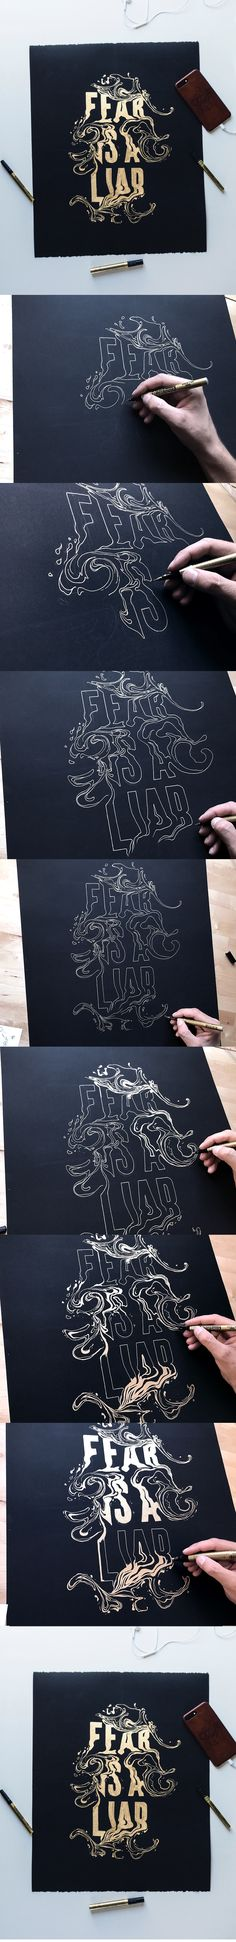 FEAR IS A LIAR | Lettering Artwork By artist @ginozko #typography #gold #lettering #design #ginozko